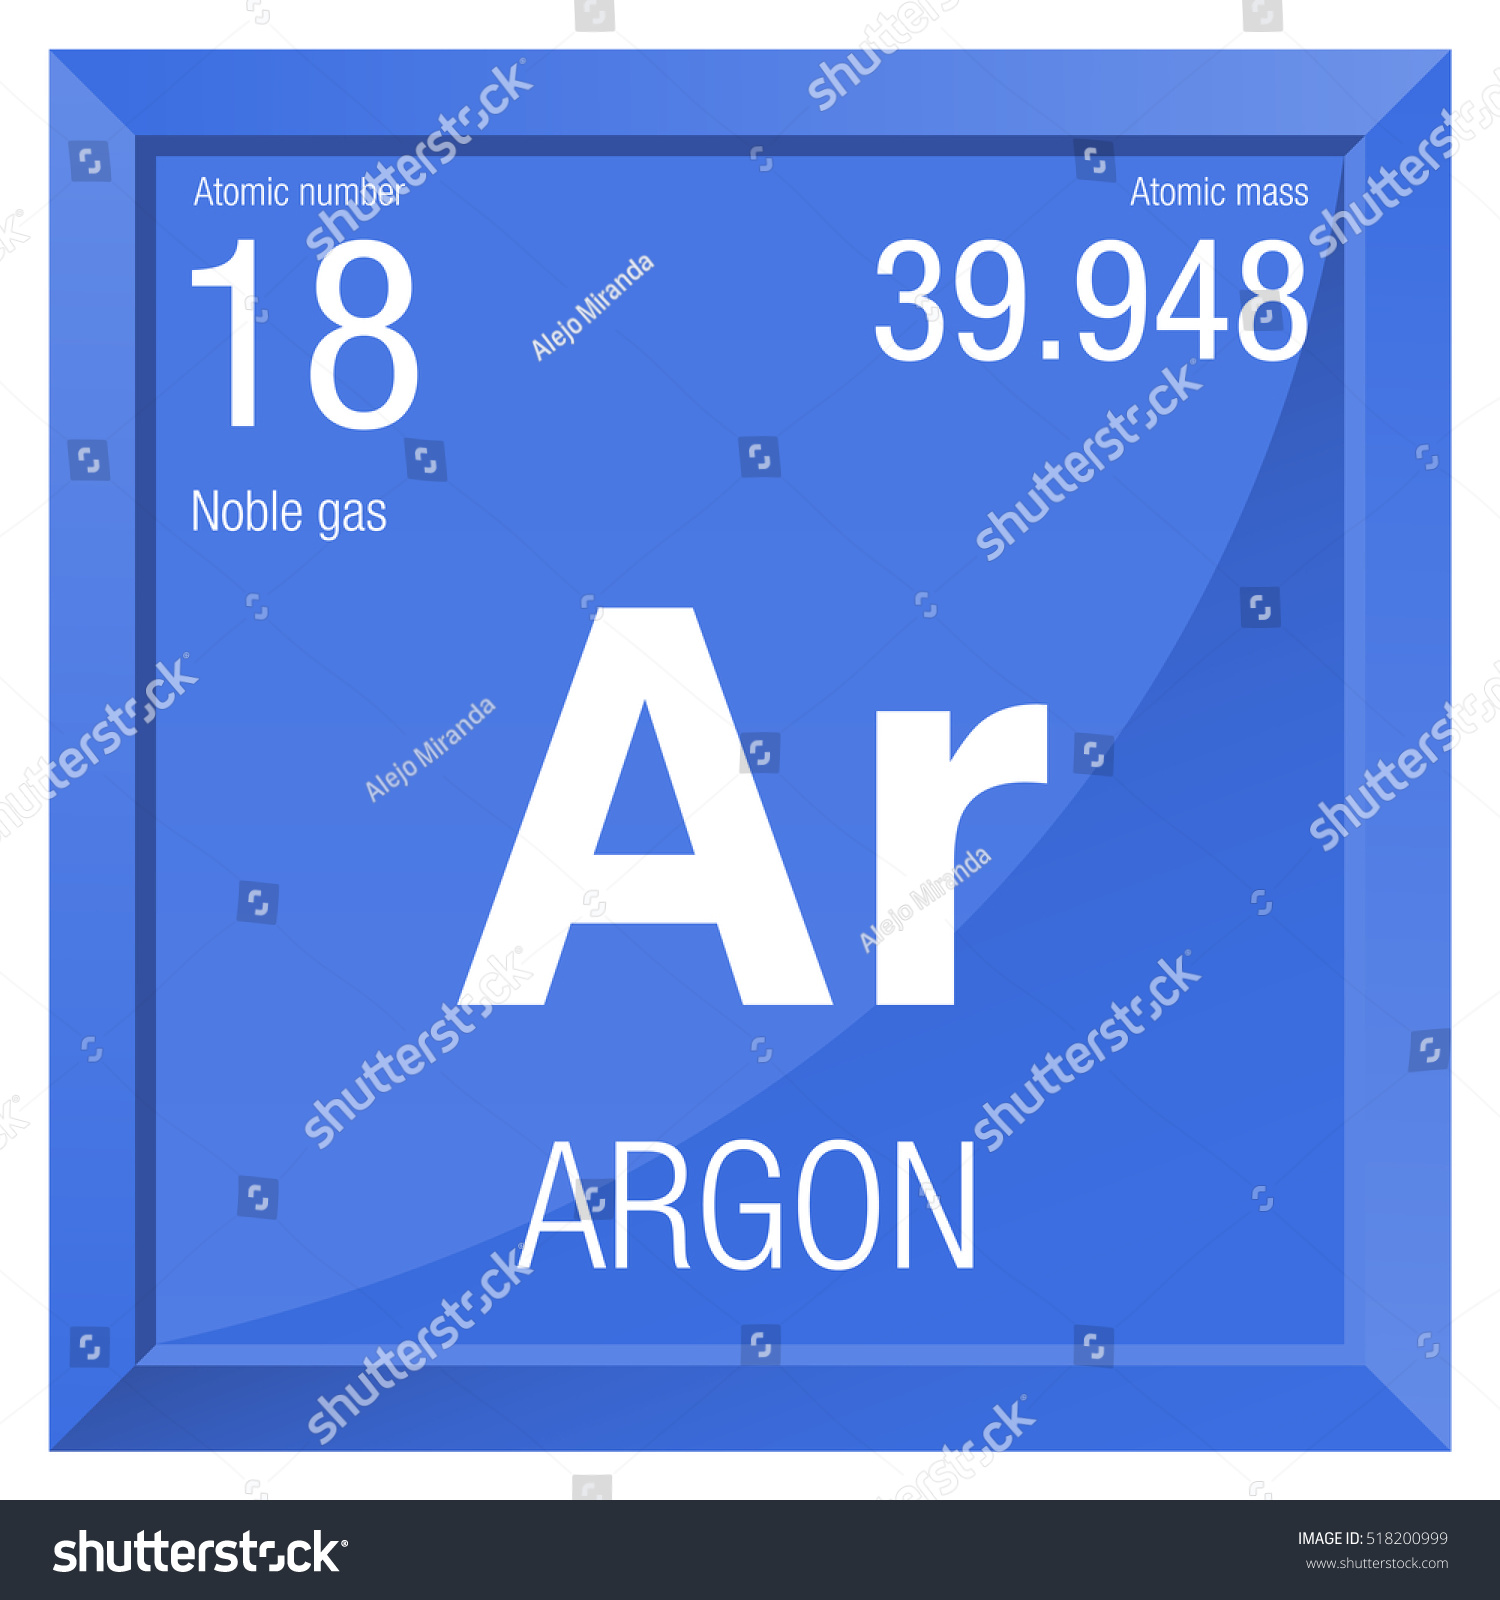 Nitrogen symbol periodic table gallery periodic table images nitrogen symbol periodic table gallery periodic table images nitrogen symbol periodic table gallery periodic table images gamestrikefo Choice Image